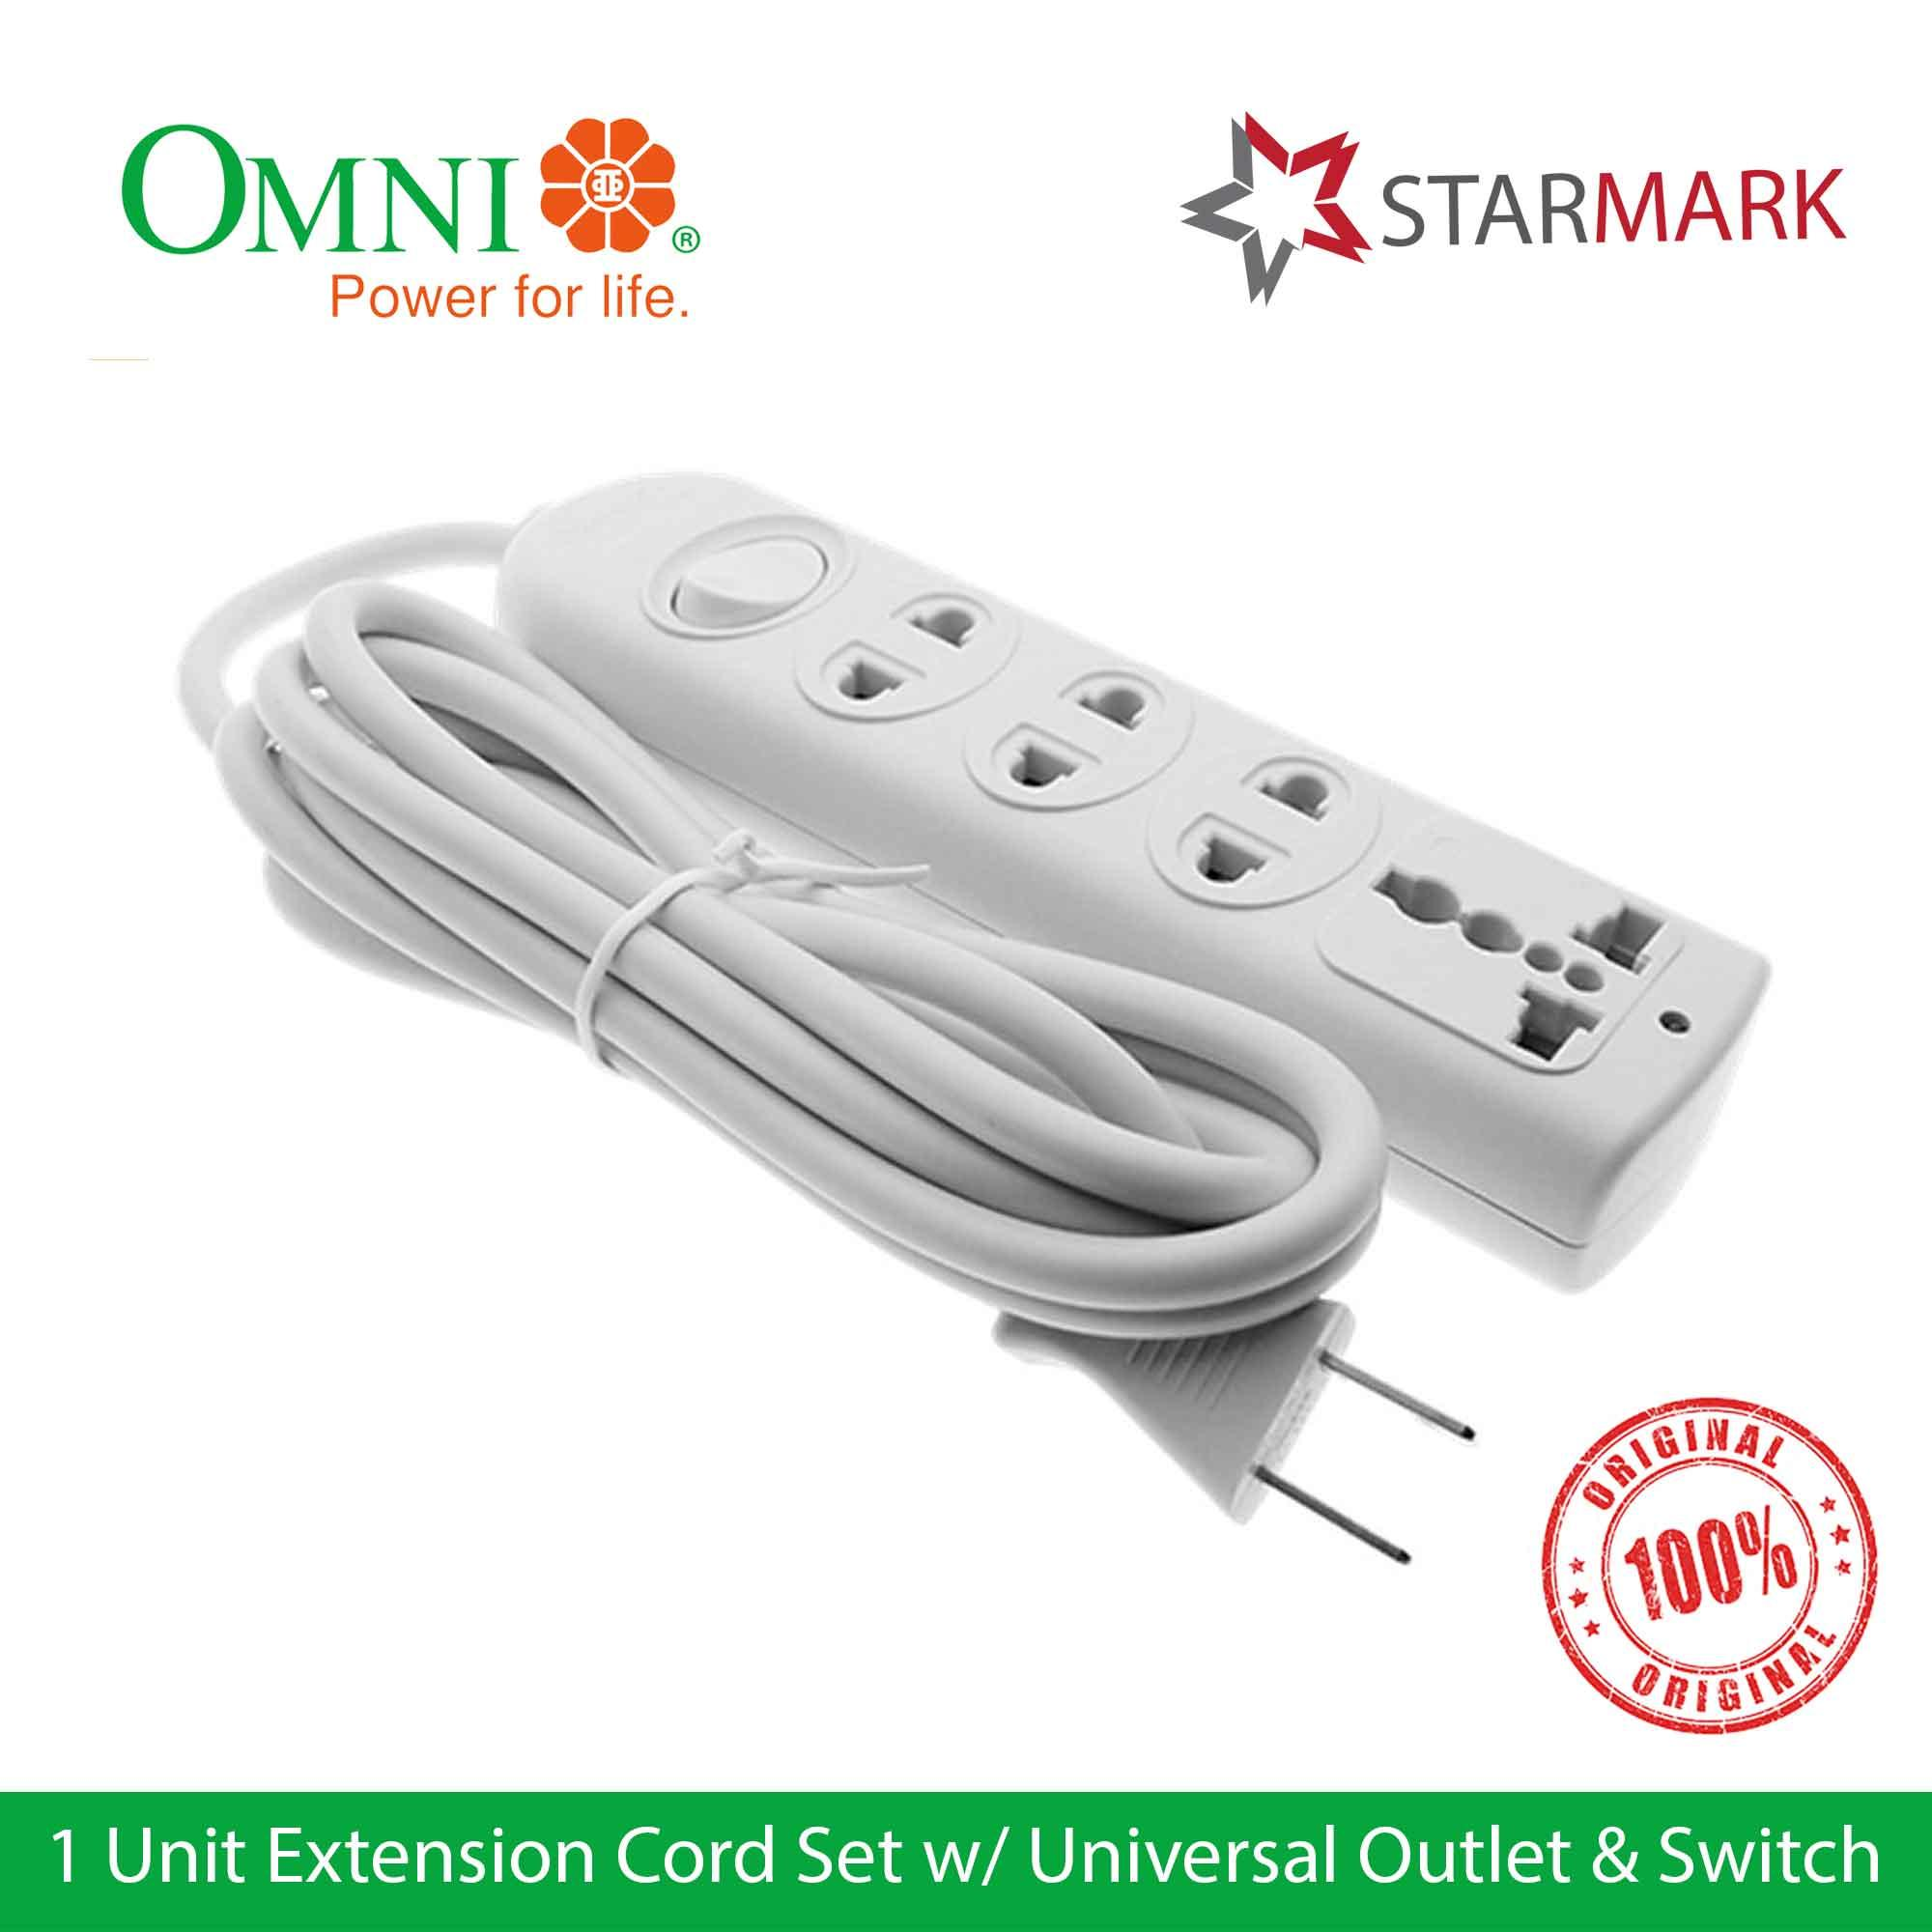 hight resolution of omni extension cord set with universal outlet and switch wer103 wer 103 genuine and